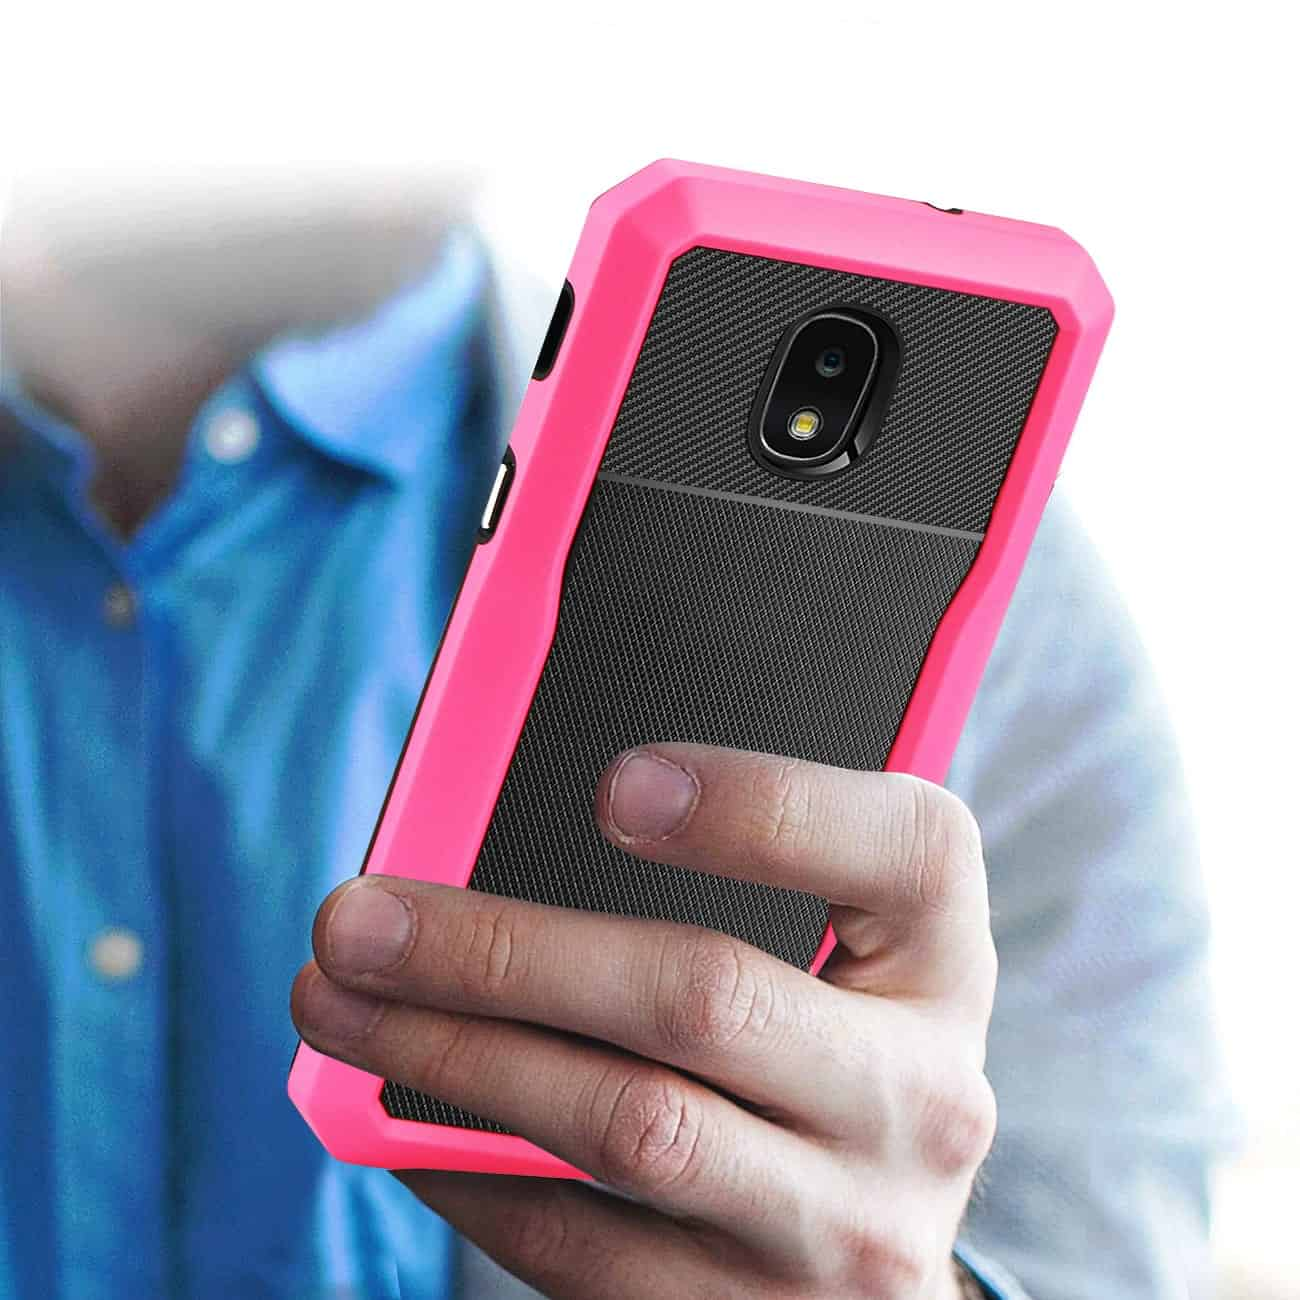 SAMSUNG GALAXY J7 (2018) Full Coverage Shockproof Case In Pink